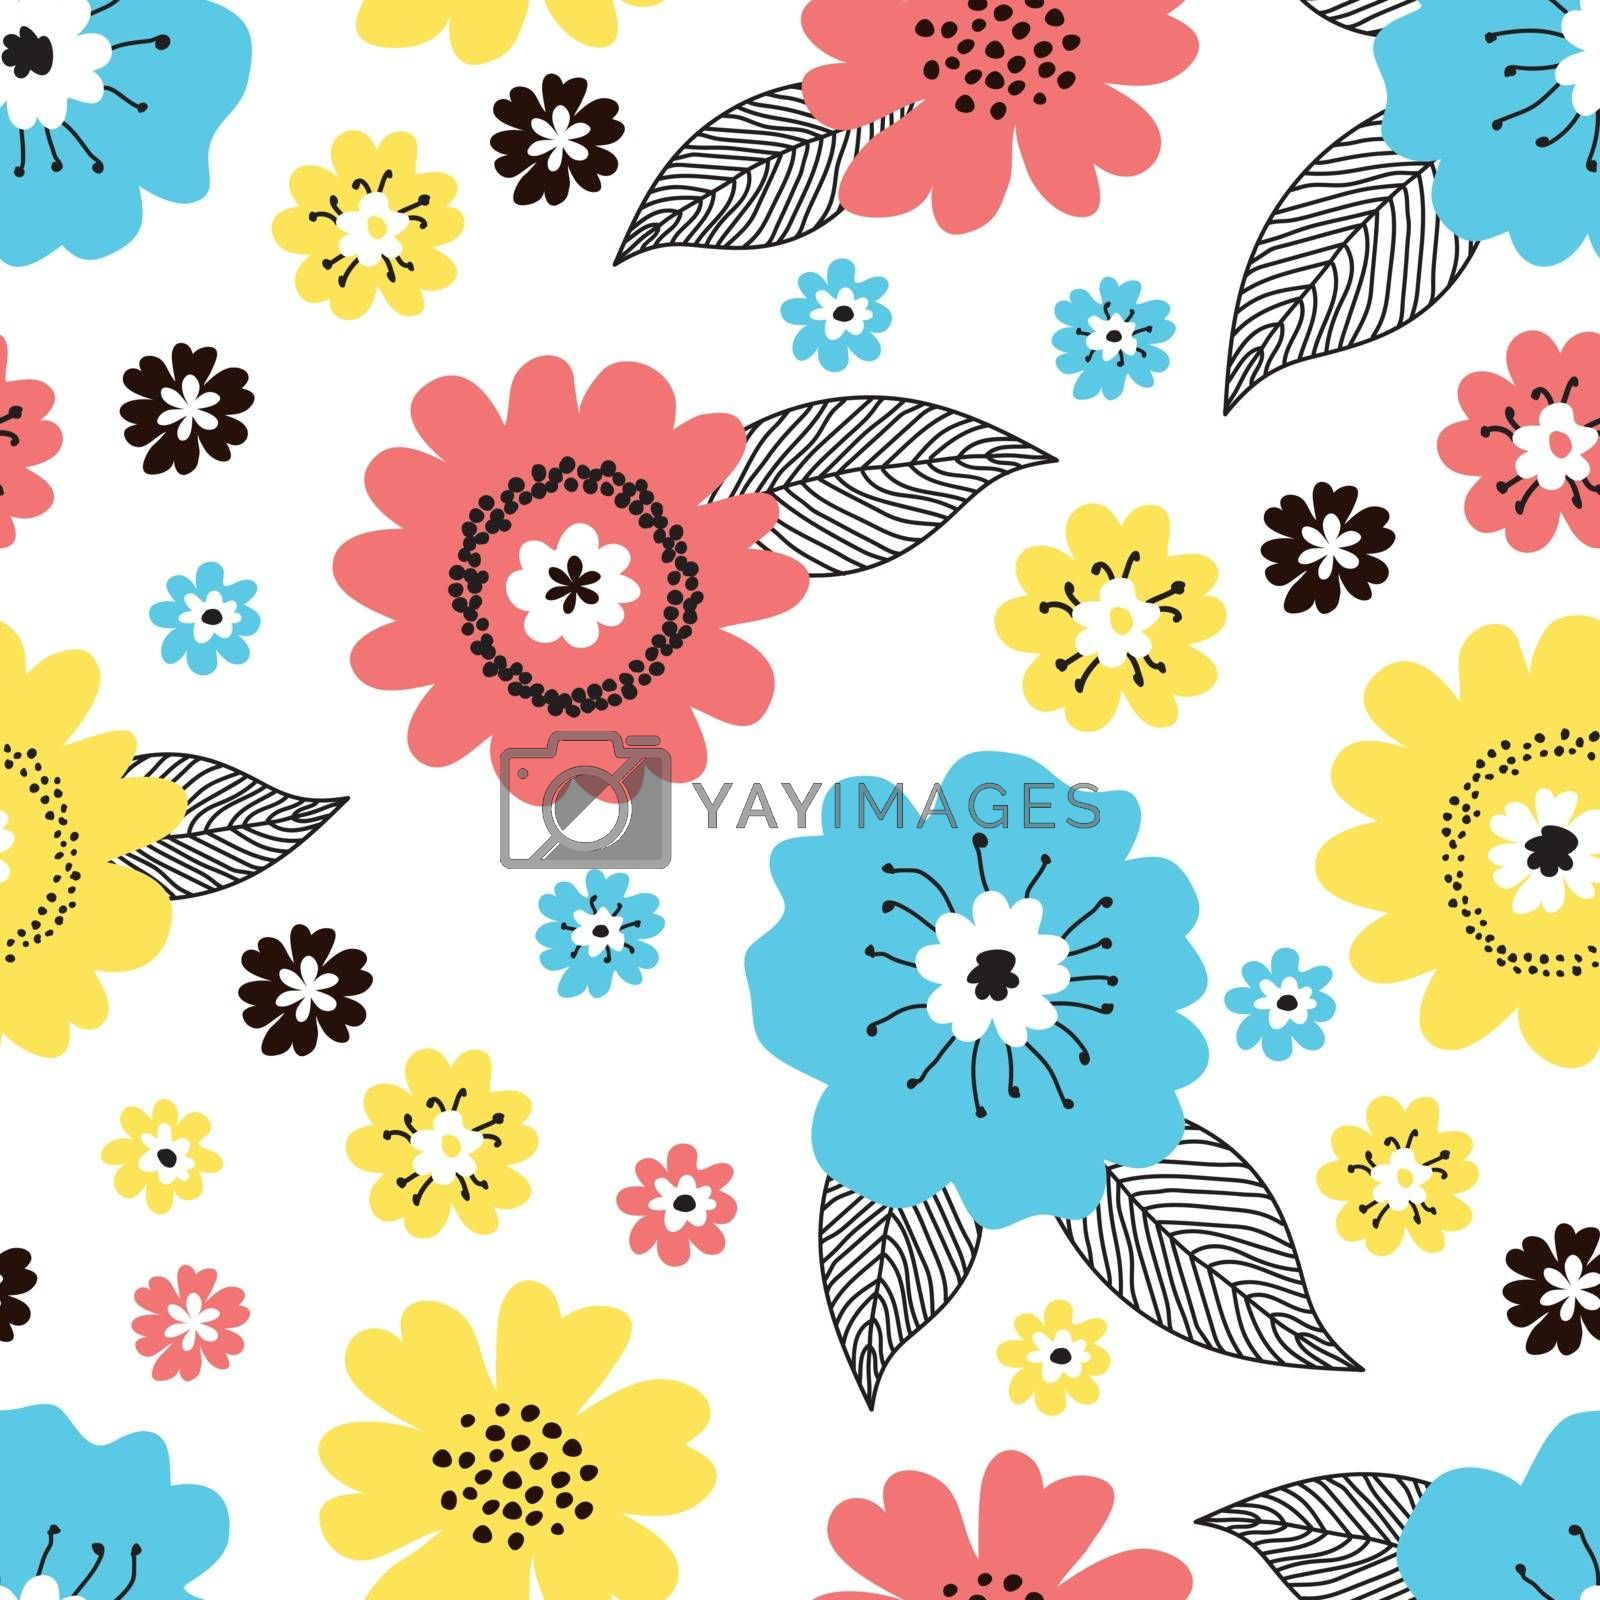 Seamless cute floral pattern with hand drawn various colorful blue, red yellow spring flowers with black leaves on white background. Vintage retro style vector design for fabric, wrapping paper, cover by Henkeova